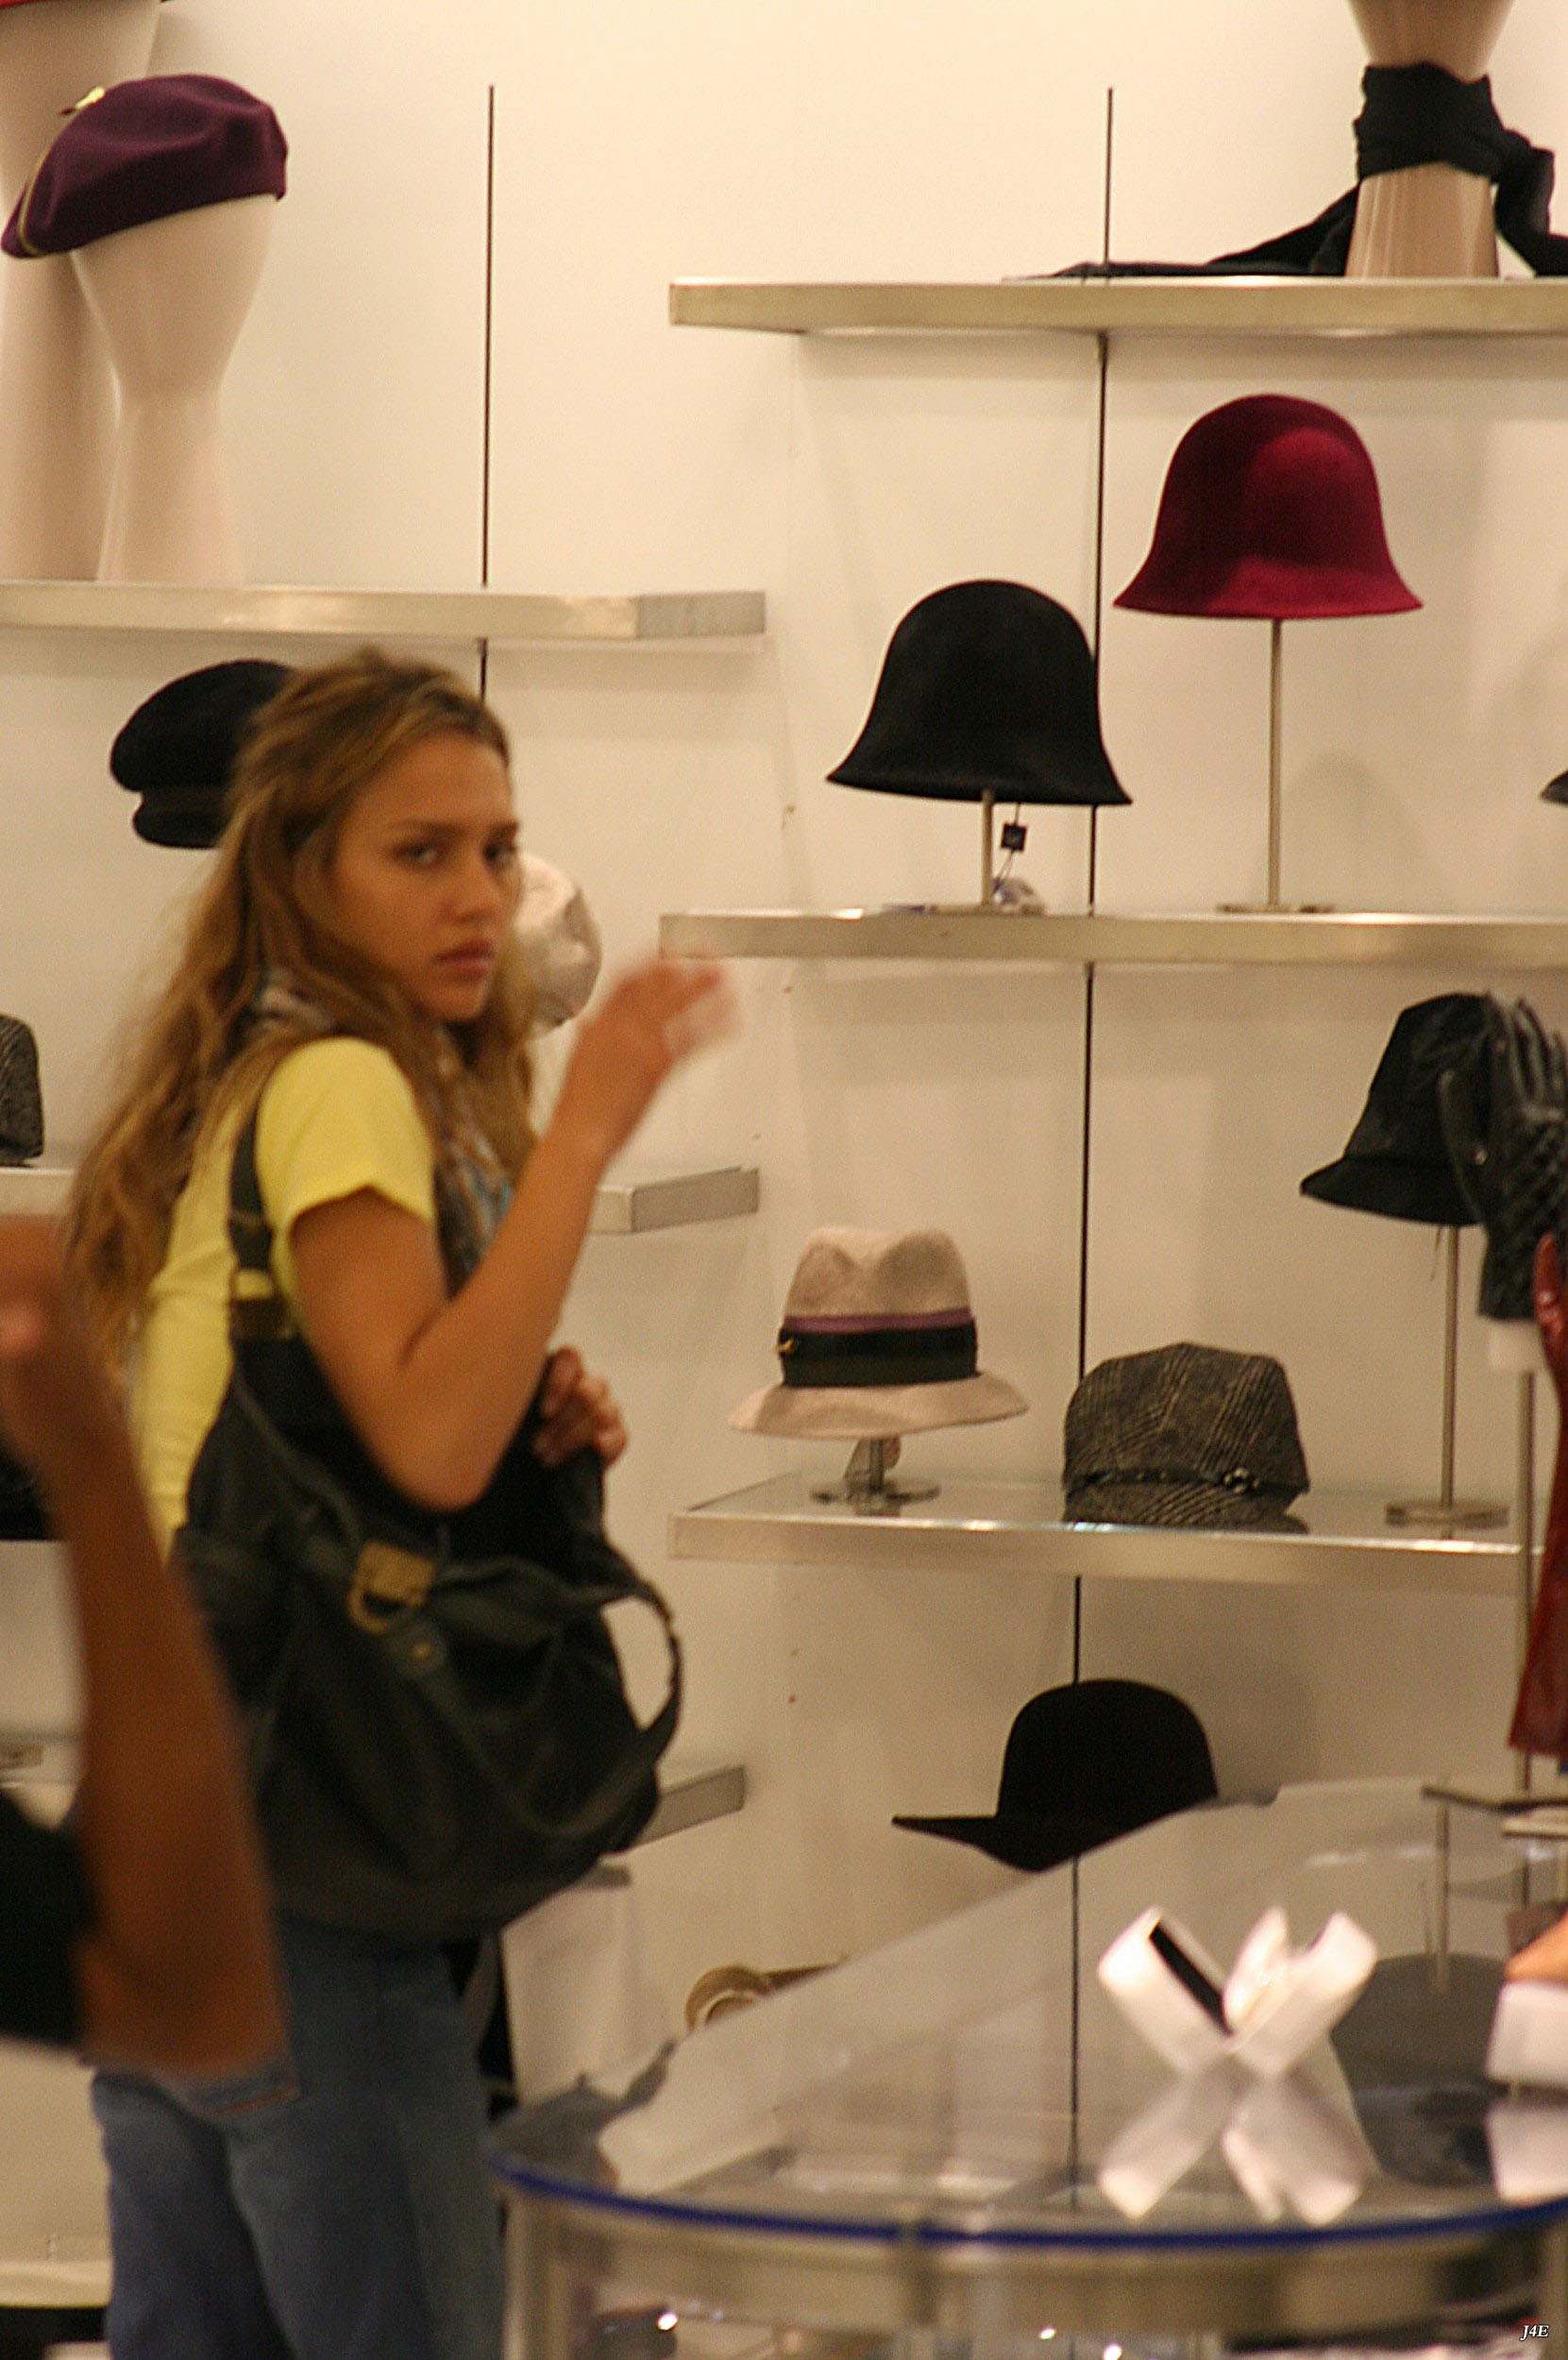 37708_Jessica_Alba_shops_at_Saks_on_5th_ave_in_L.A._-_Oct_11_2007_001_122_11lo.jpg